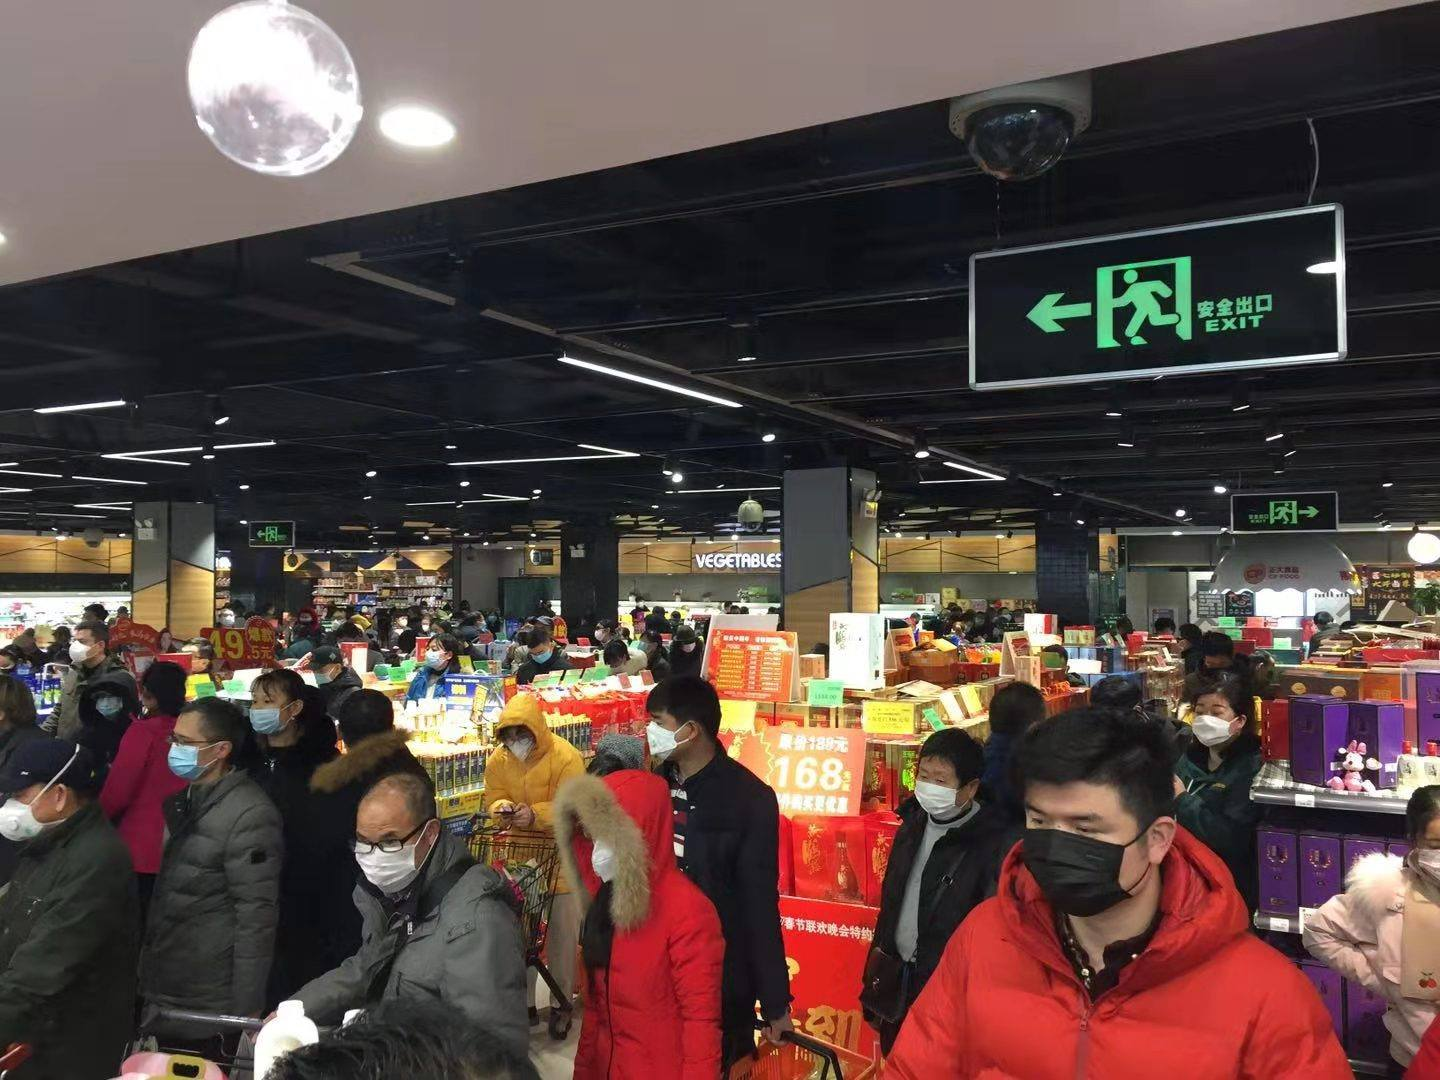 Shoppers a week ago at Wushang Market. Its a stote similar to a Walmart but on a smaller scale.